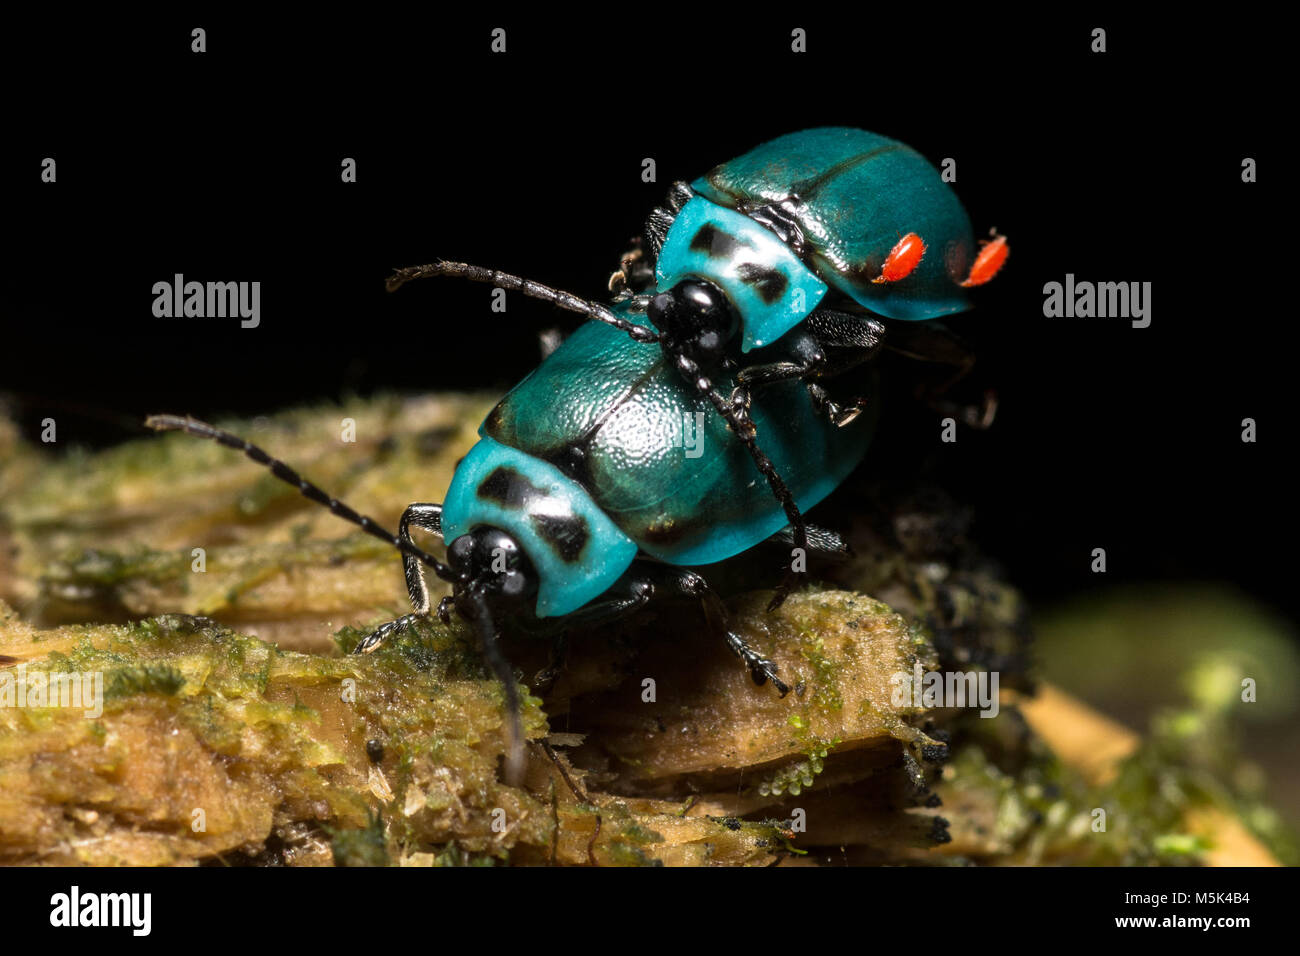 Two beautiful blue leaf beetles from Ecuador - Stock Image